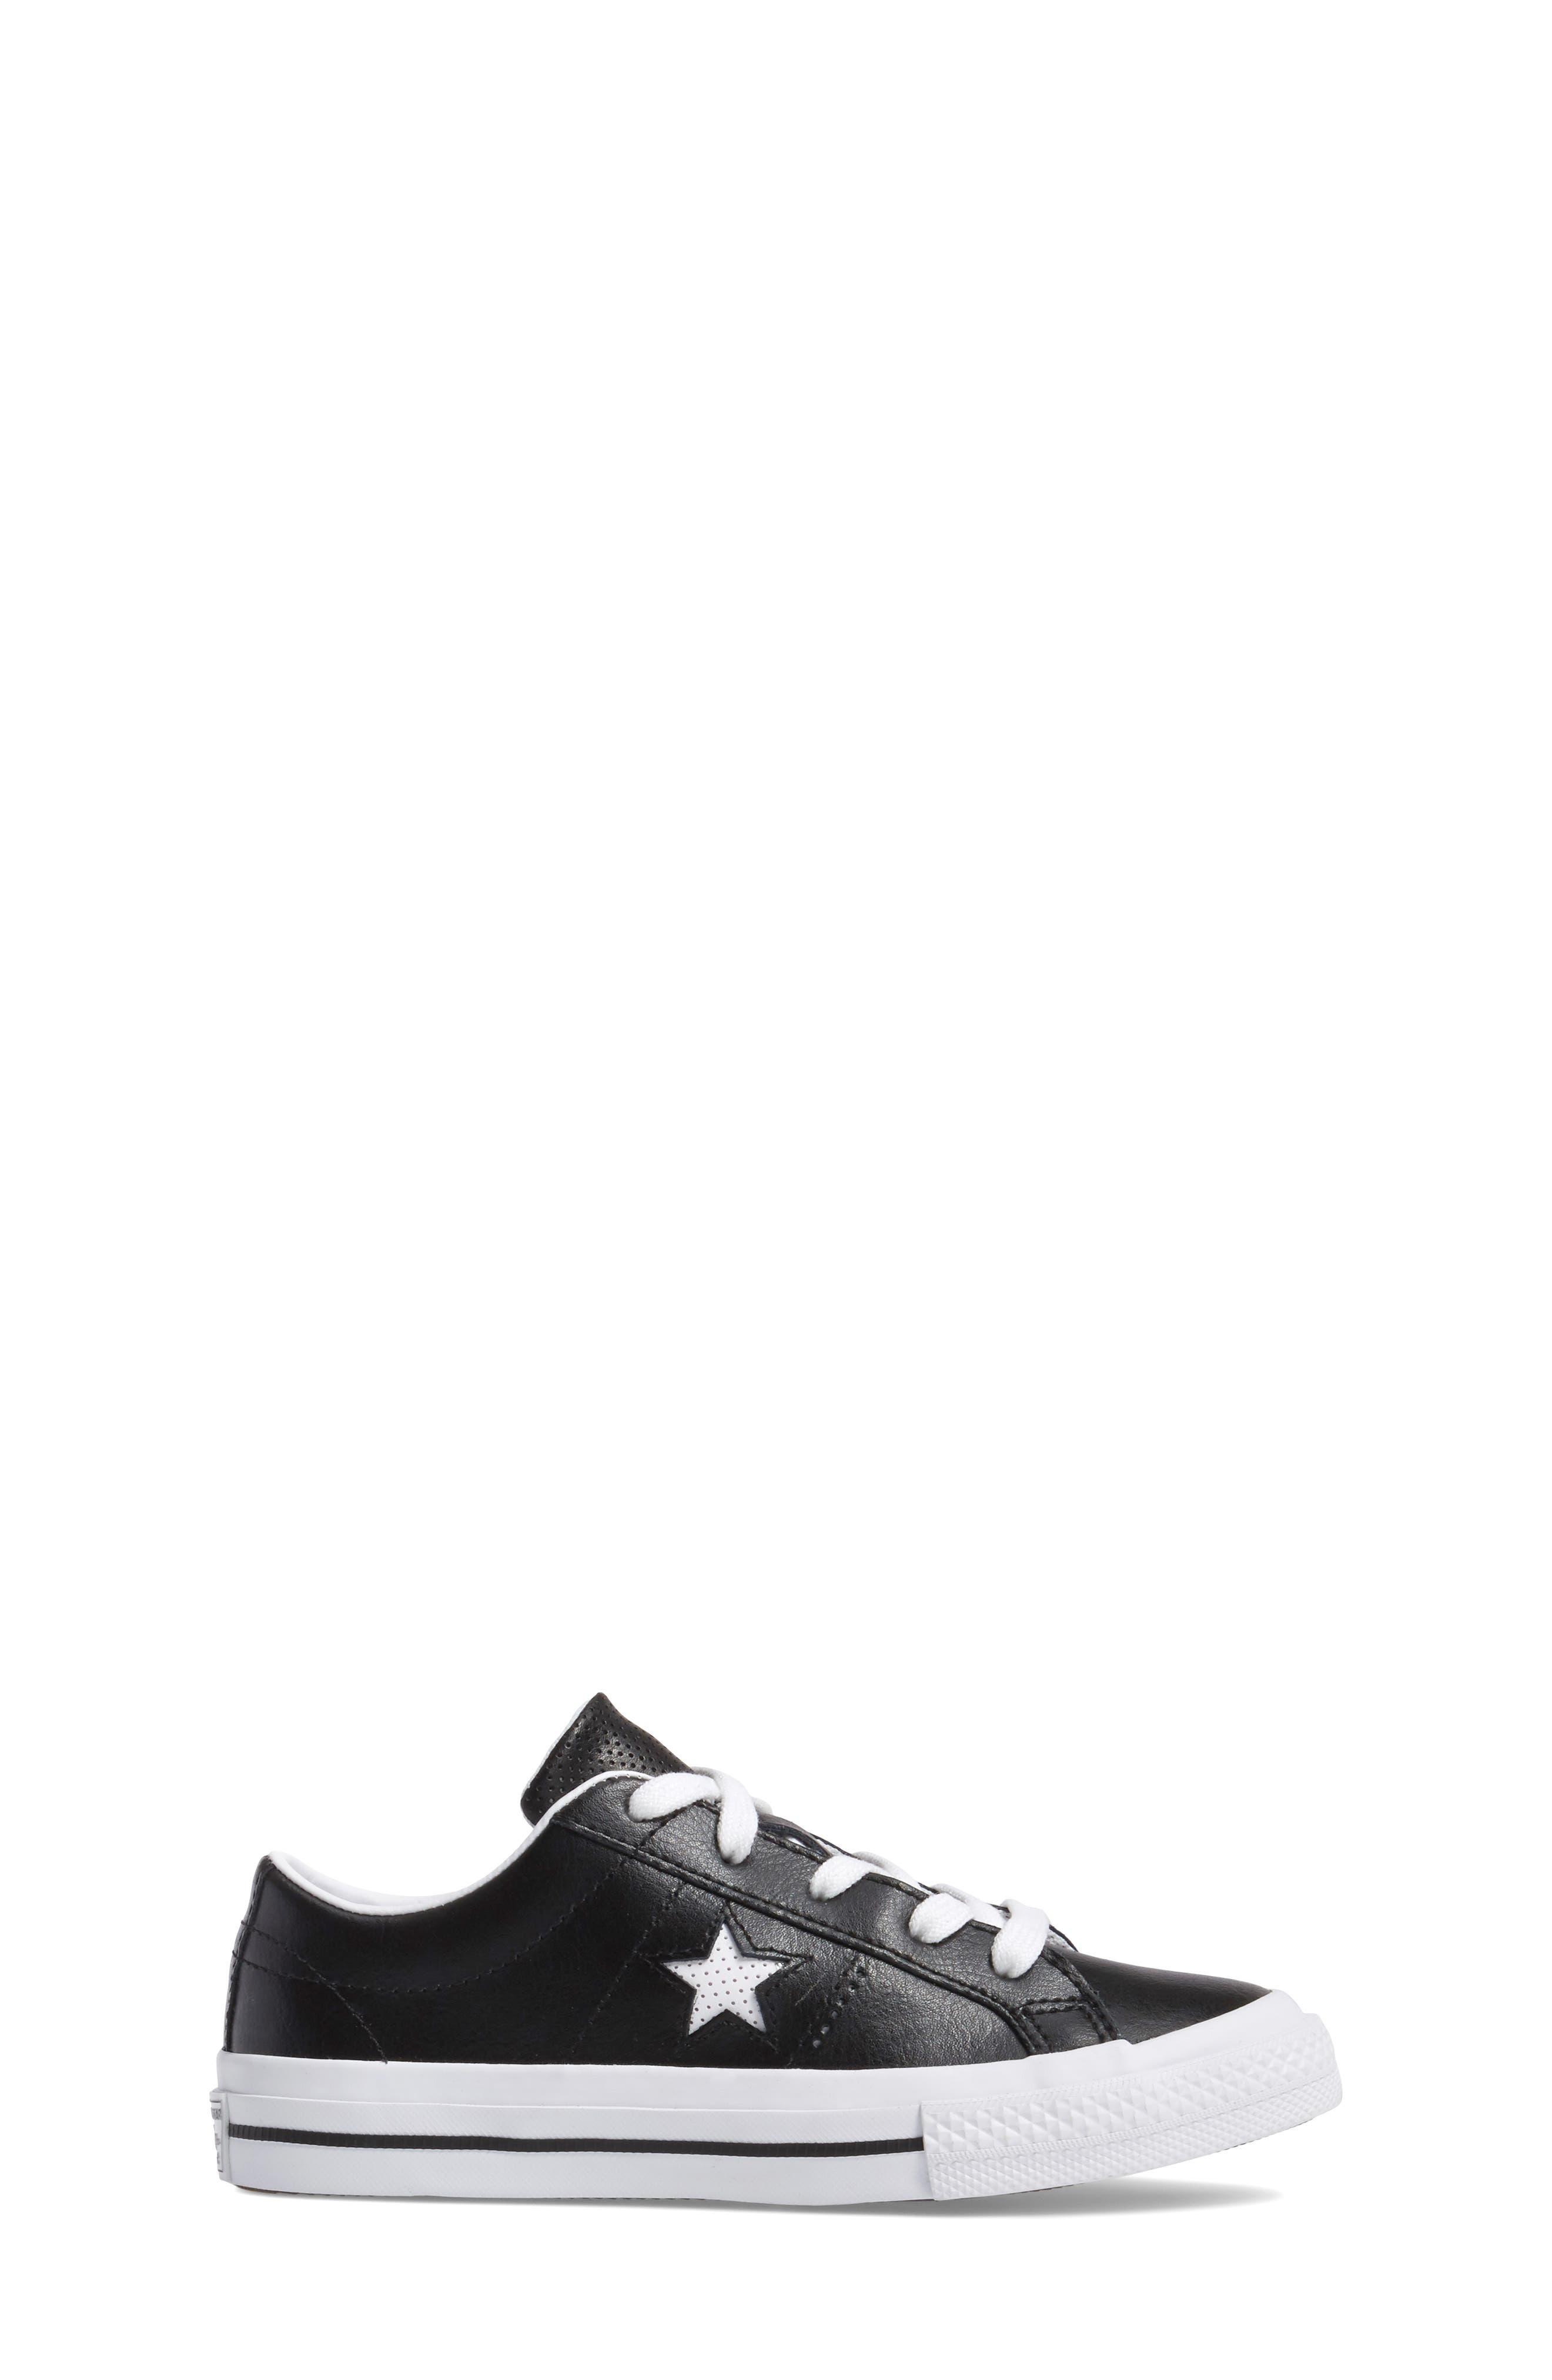 Chuck Taylor<sup>®</sup> All Star<sup>®</sup> One Star Sneaker,                             Alternate thumbnail 3, color,                             001